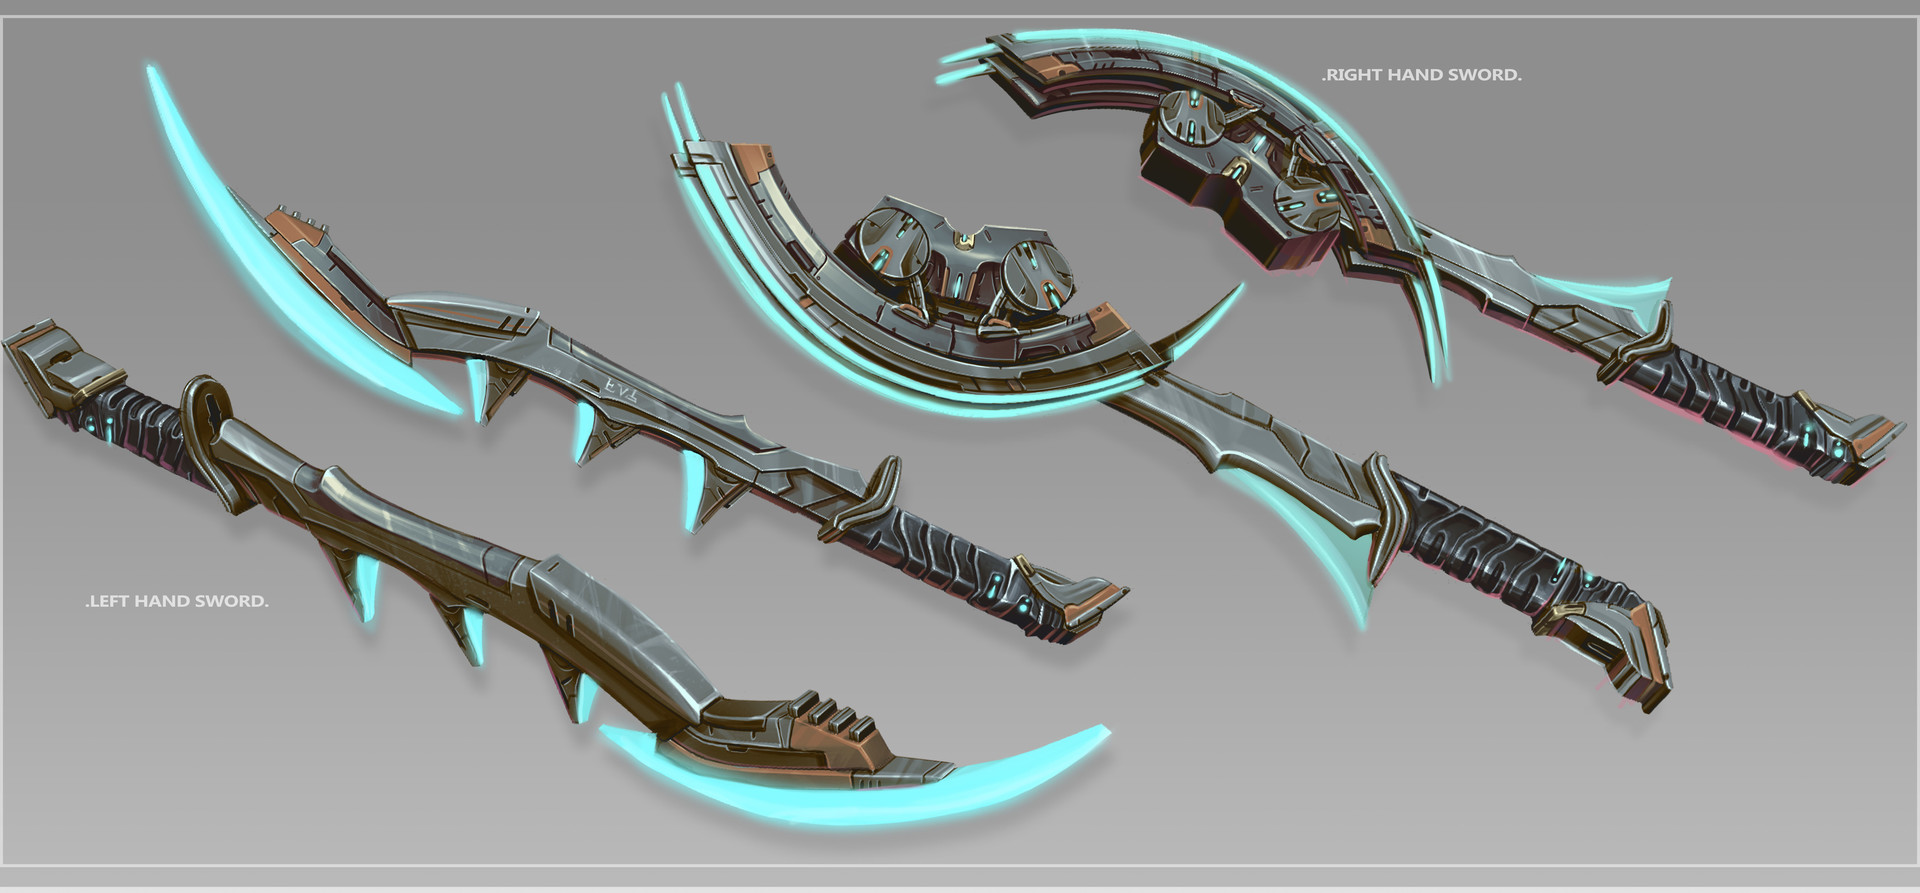 Additional Views of the unsheathed swords.